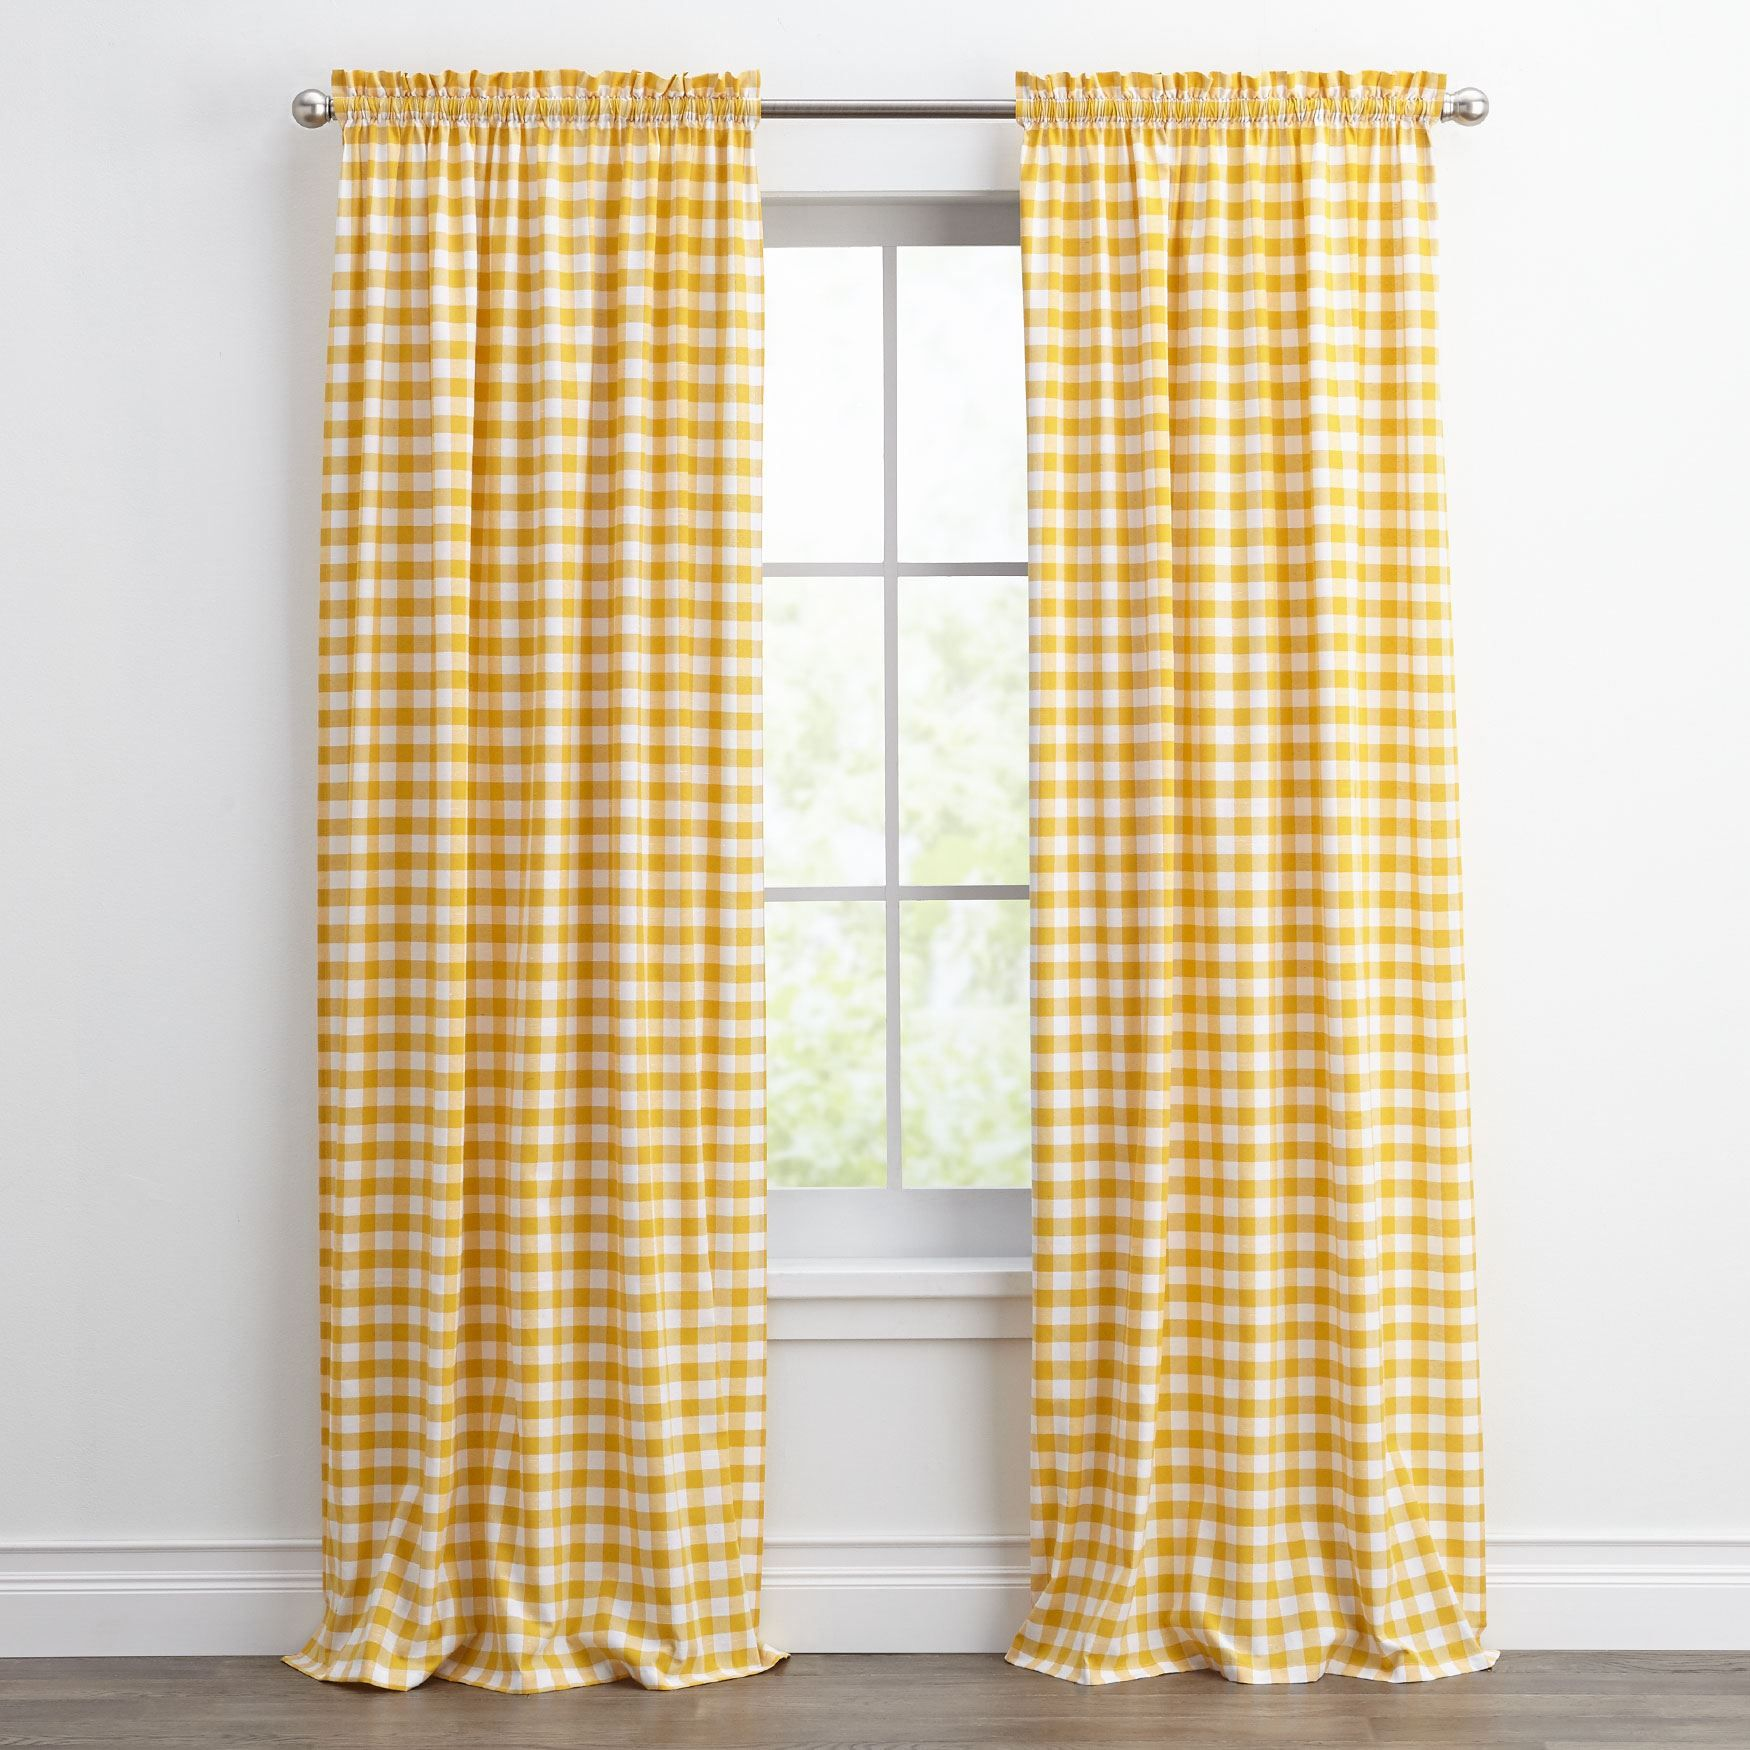 Buffalo Plaid Curtain Yellow Buffalo Plaid Curtains Plaid Curtains Curtains